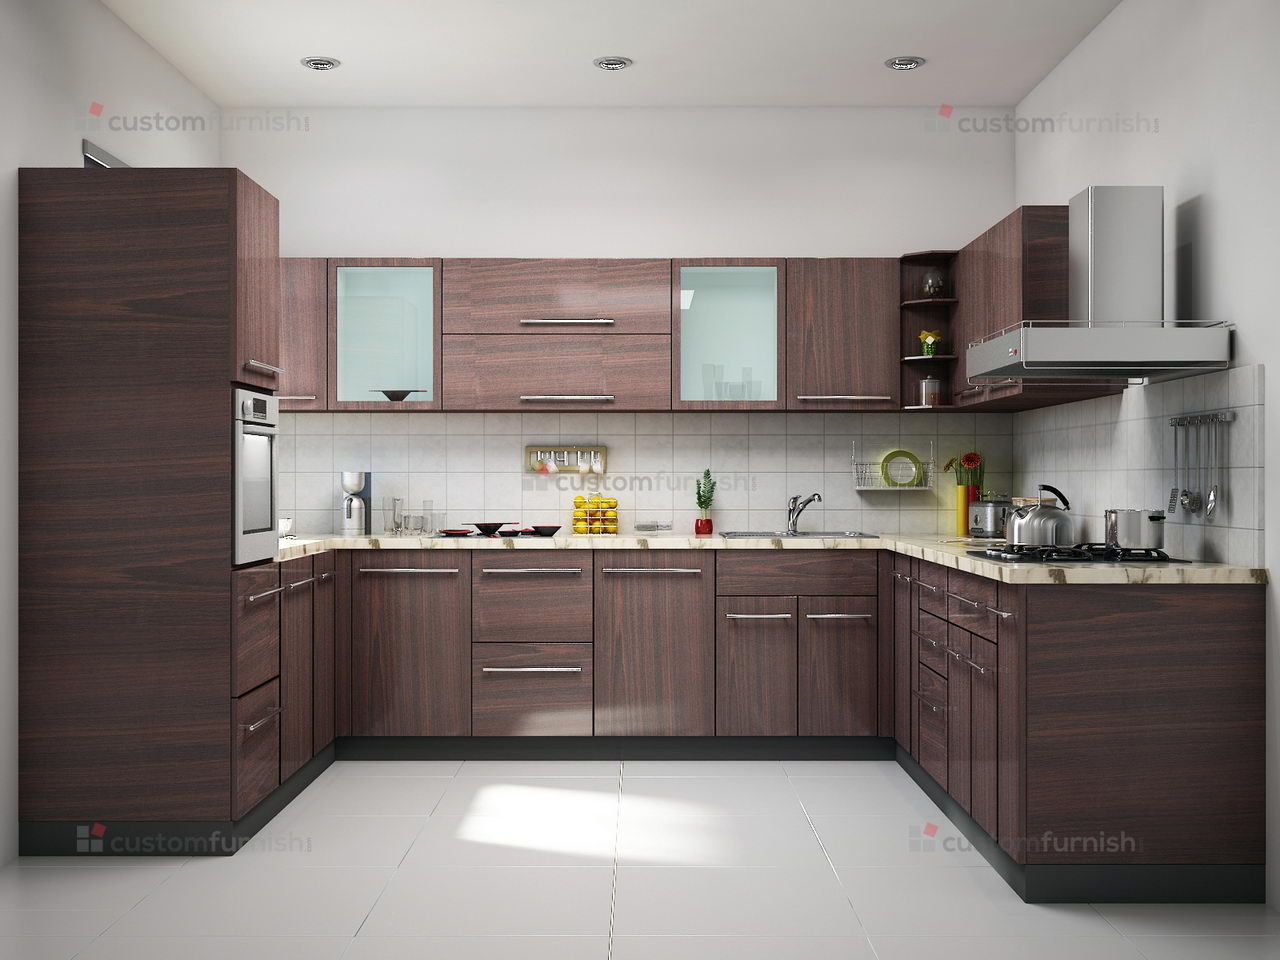 Small kitchen renovationscontemporary u shaped kitchen designs small kitchen - Kitchen interior designing ...